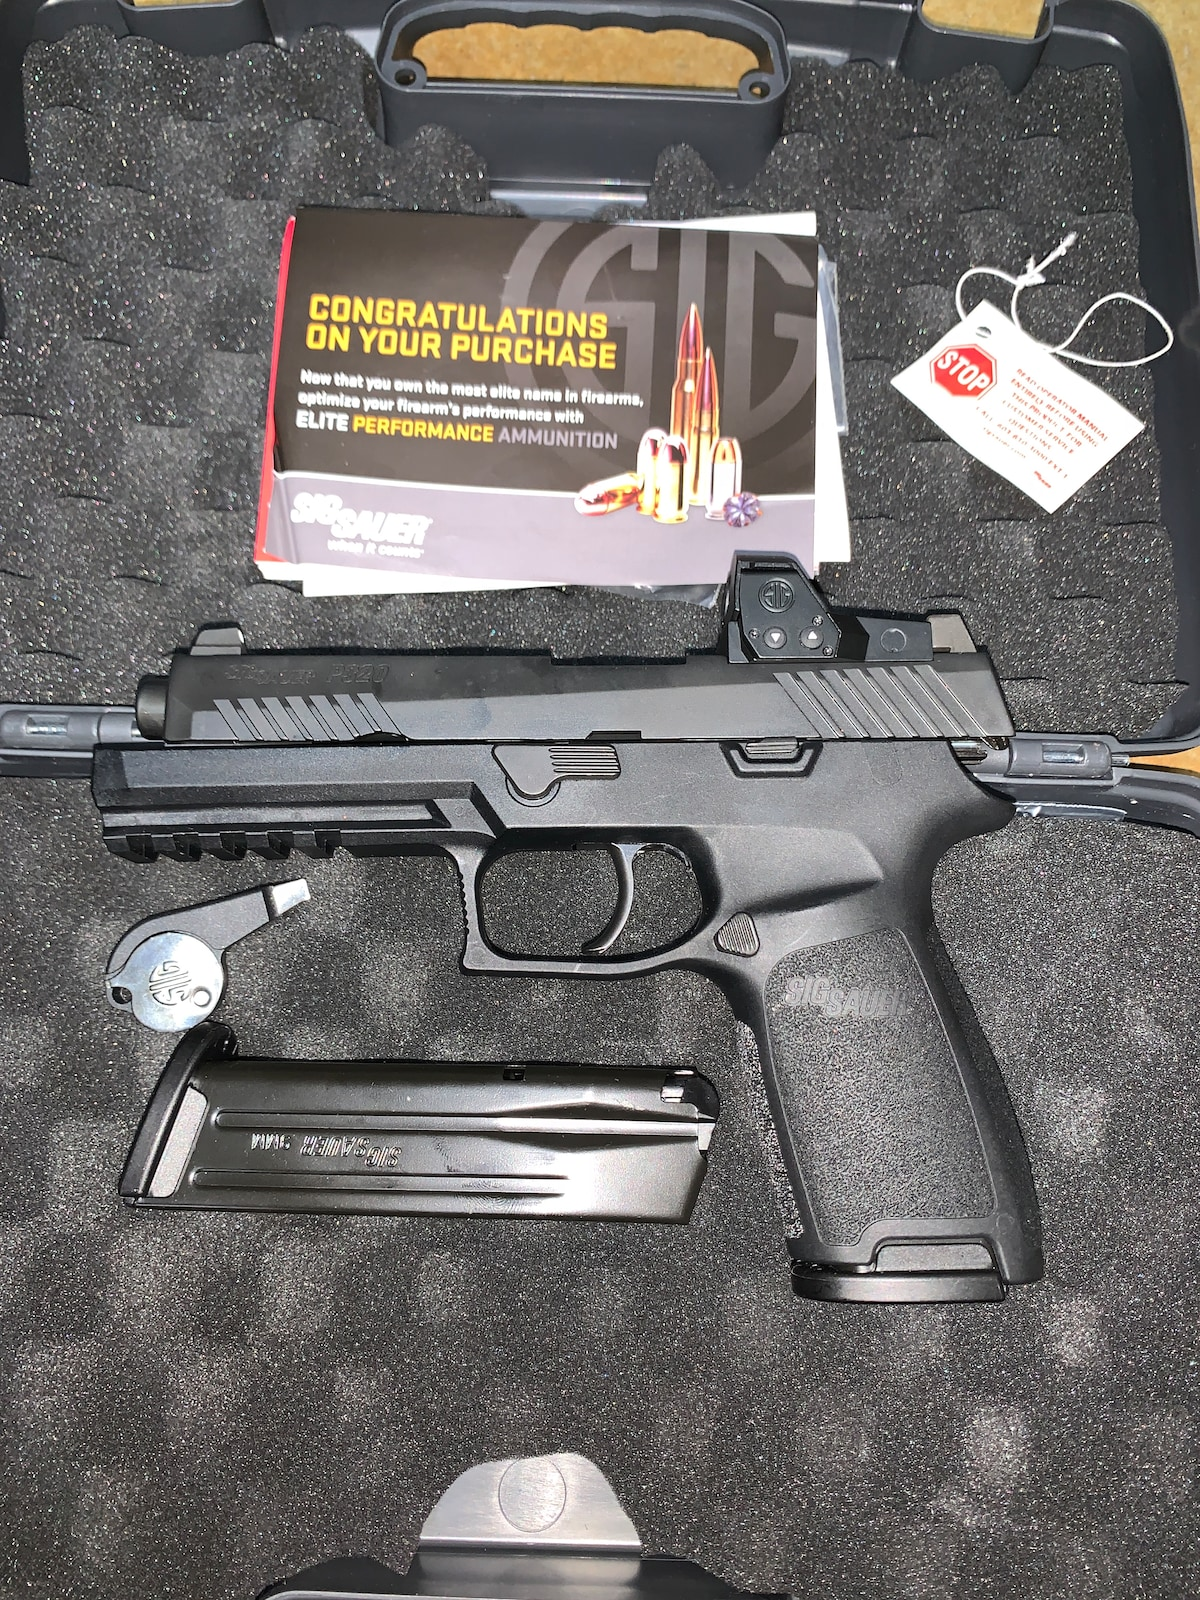 SIG SAUER P320 RXP FULL-SIZE